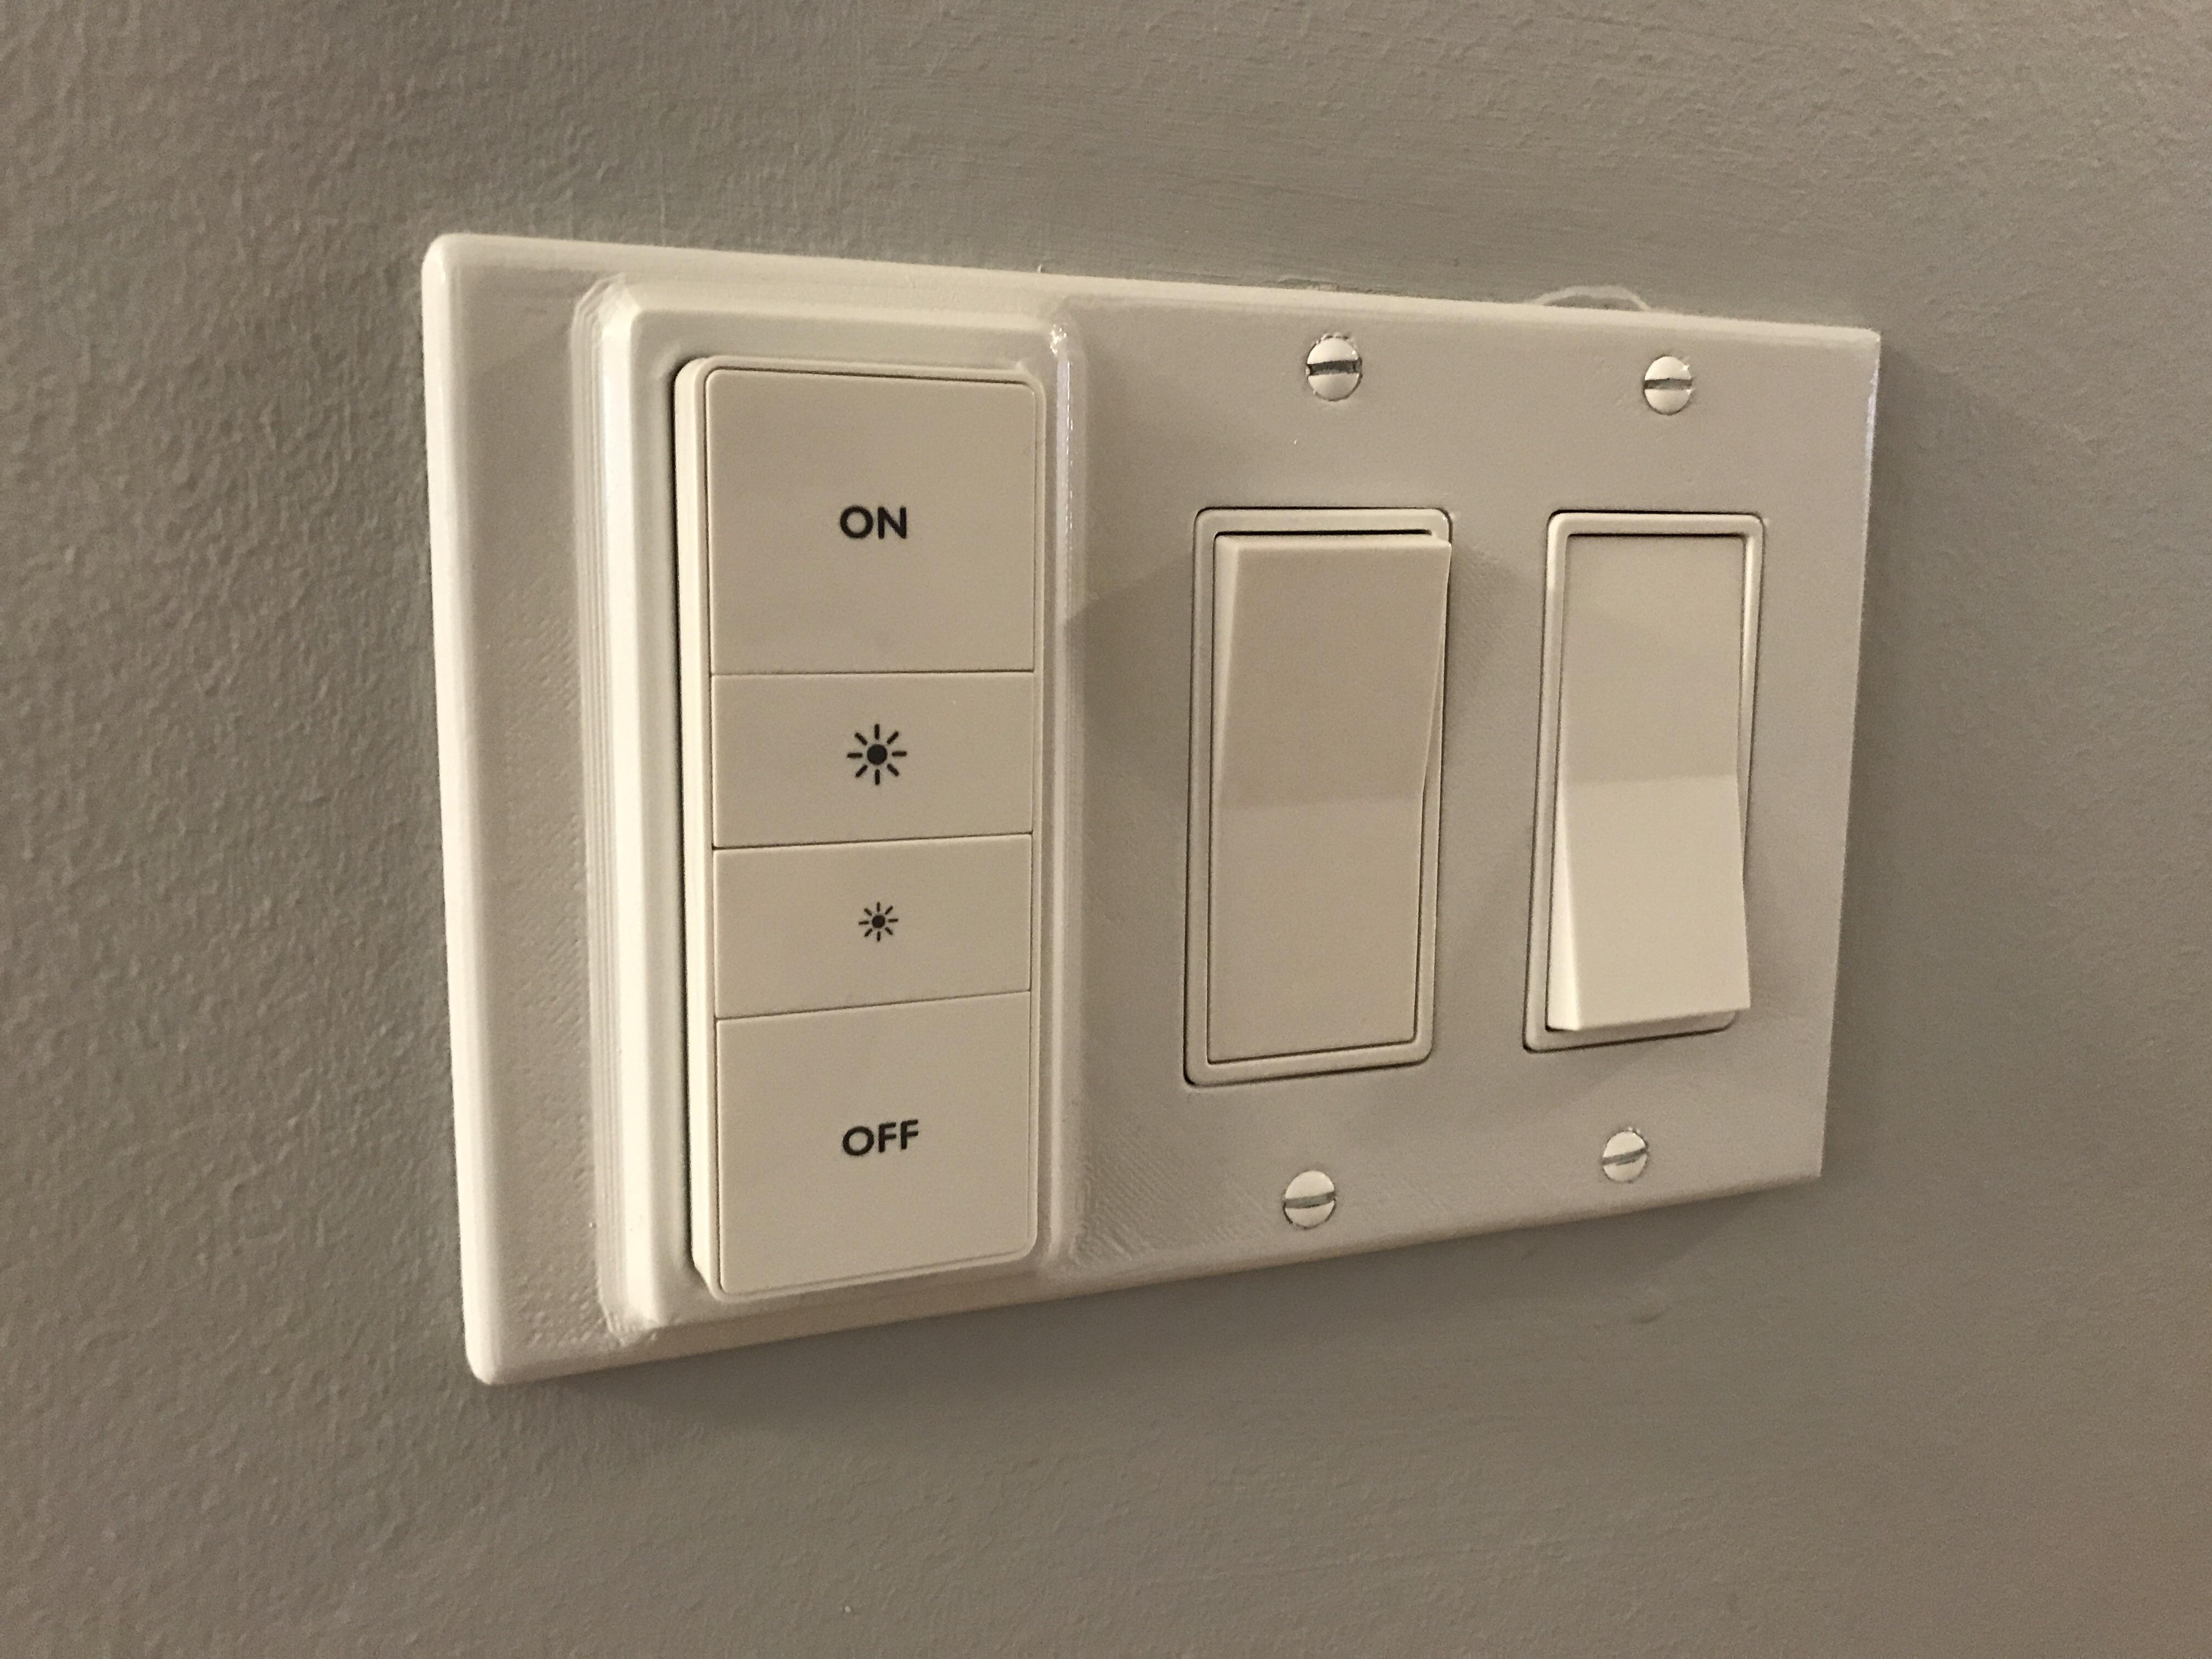 Hue Fitting Gang Plates W Dimmer Switch Fitting Hue